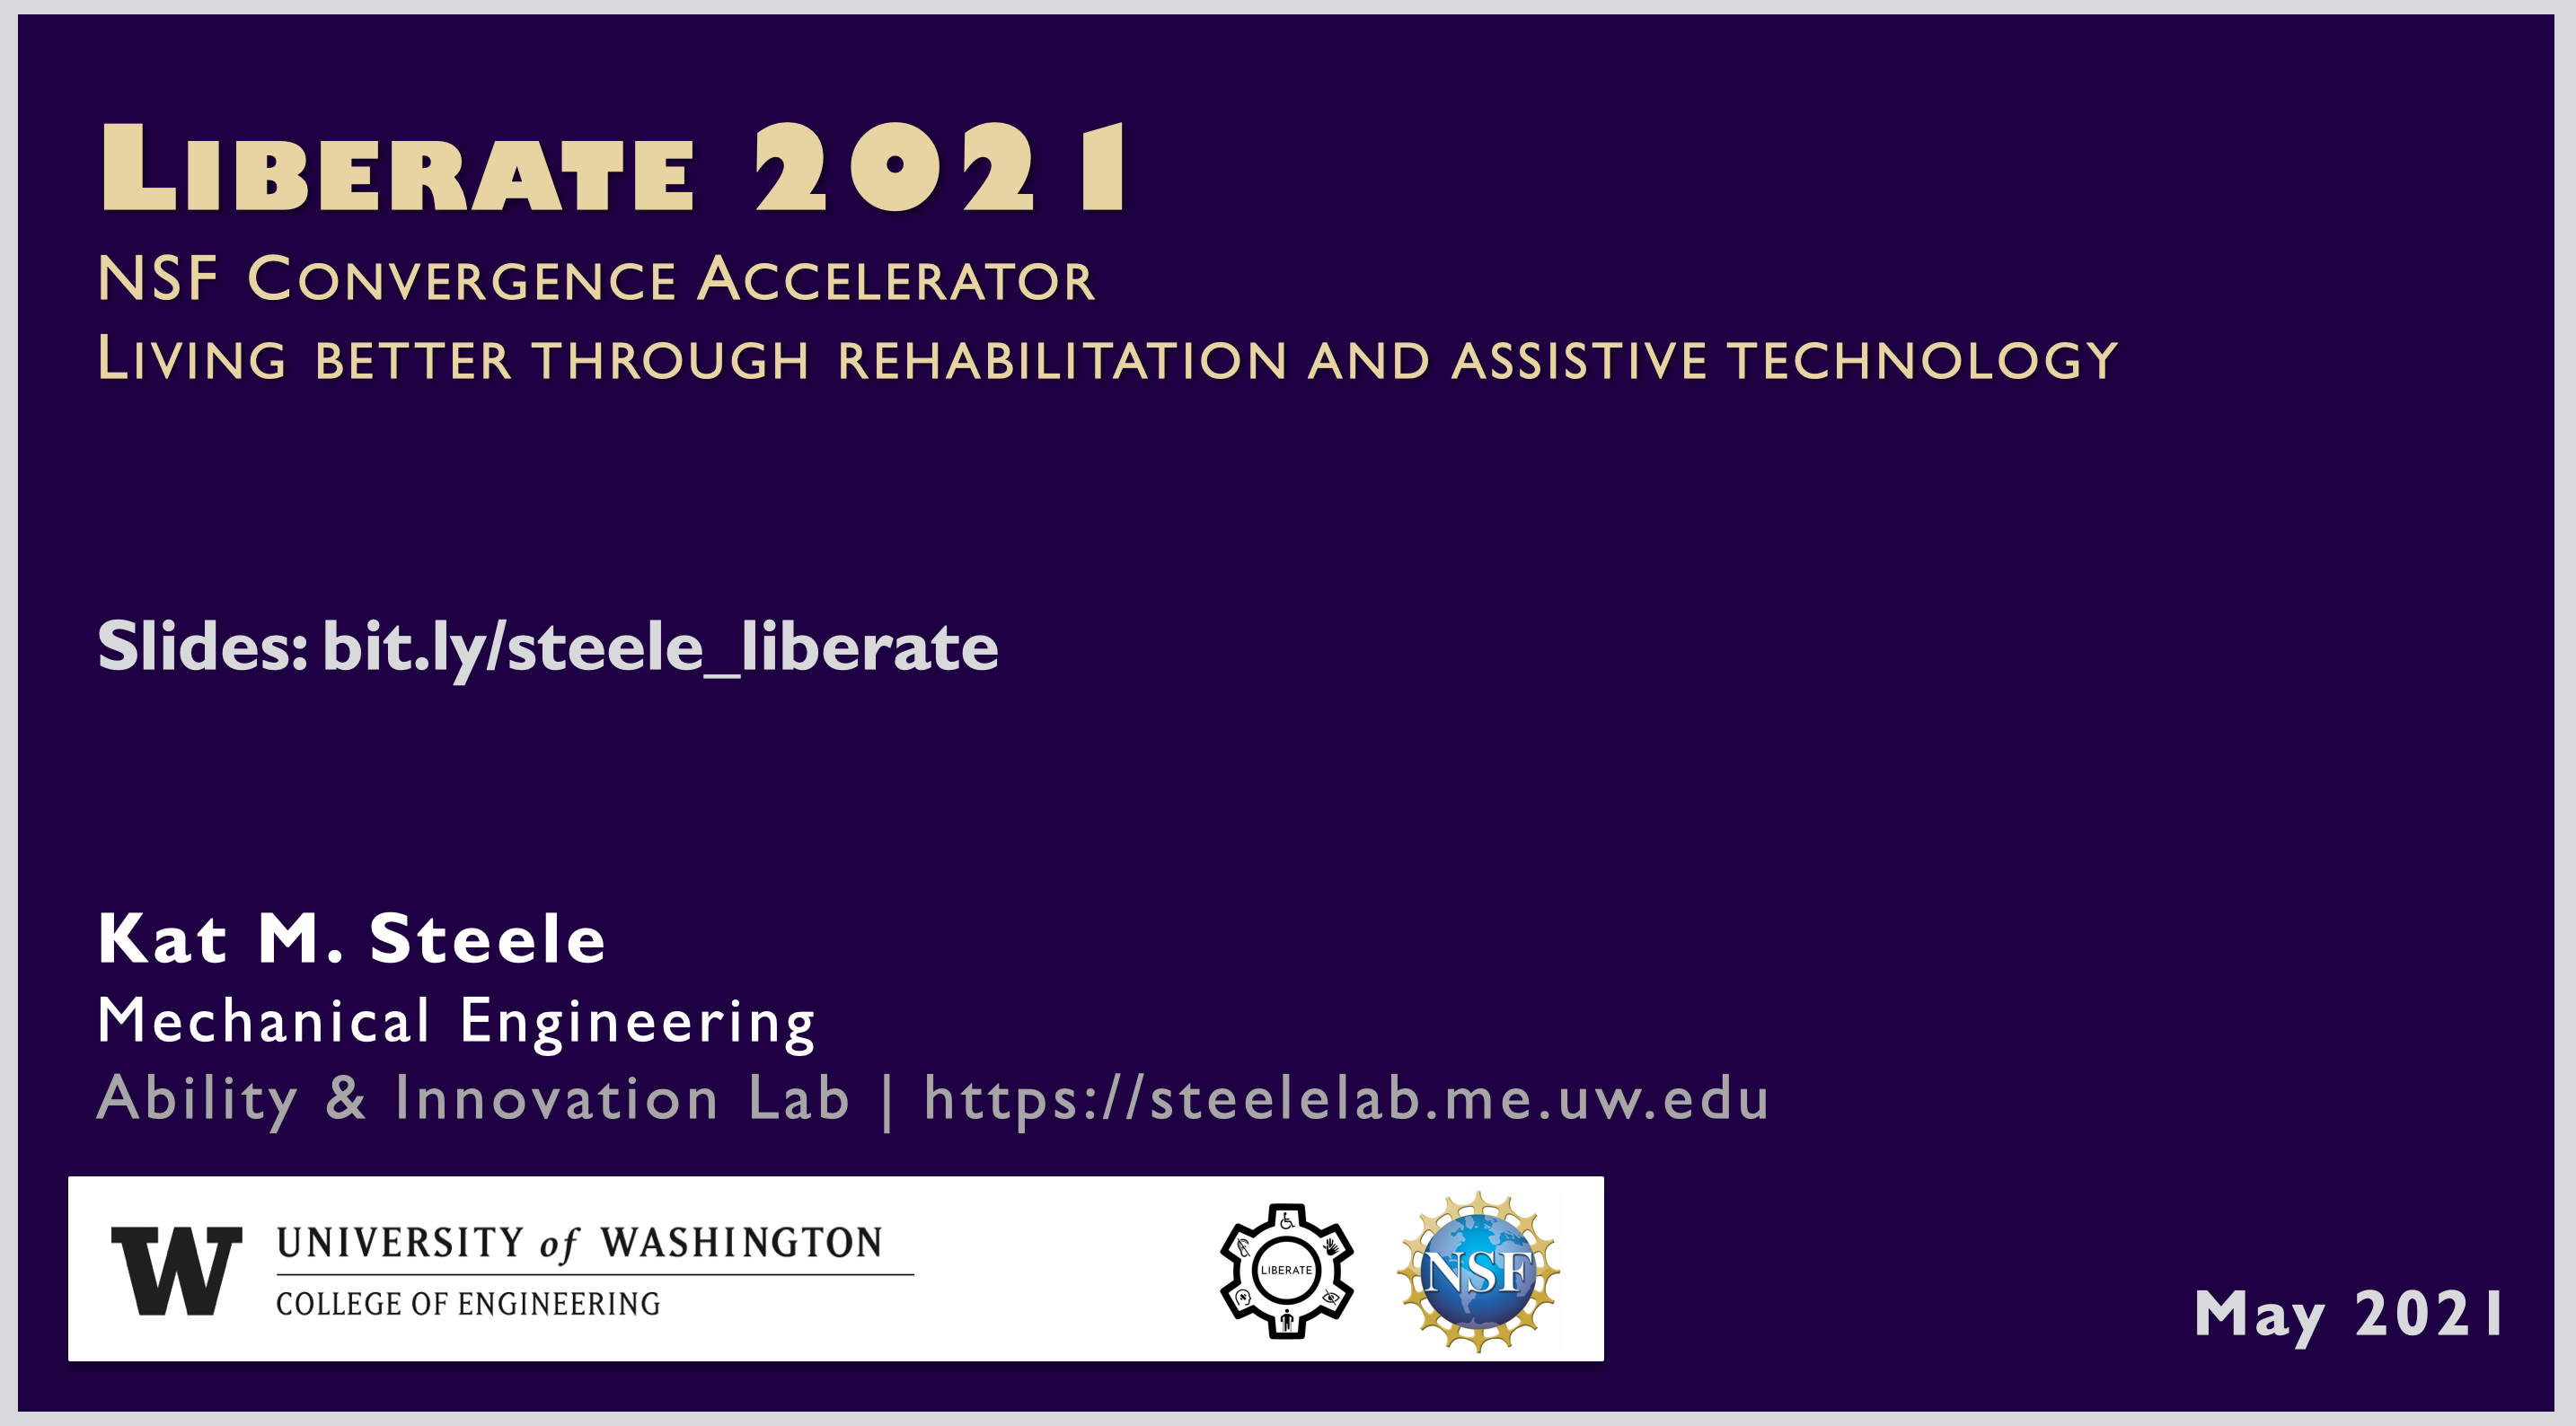 title slide of Dr. Steele's presentation on a purple background with text Liberate 2021 NSF convergence accelerator